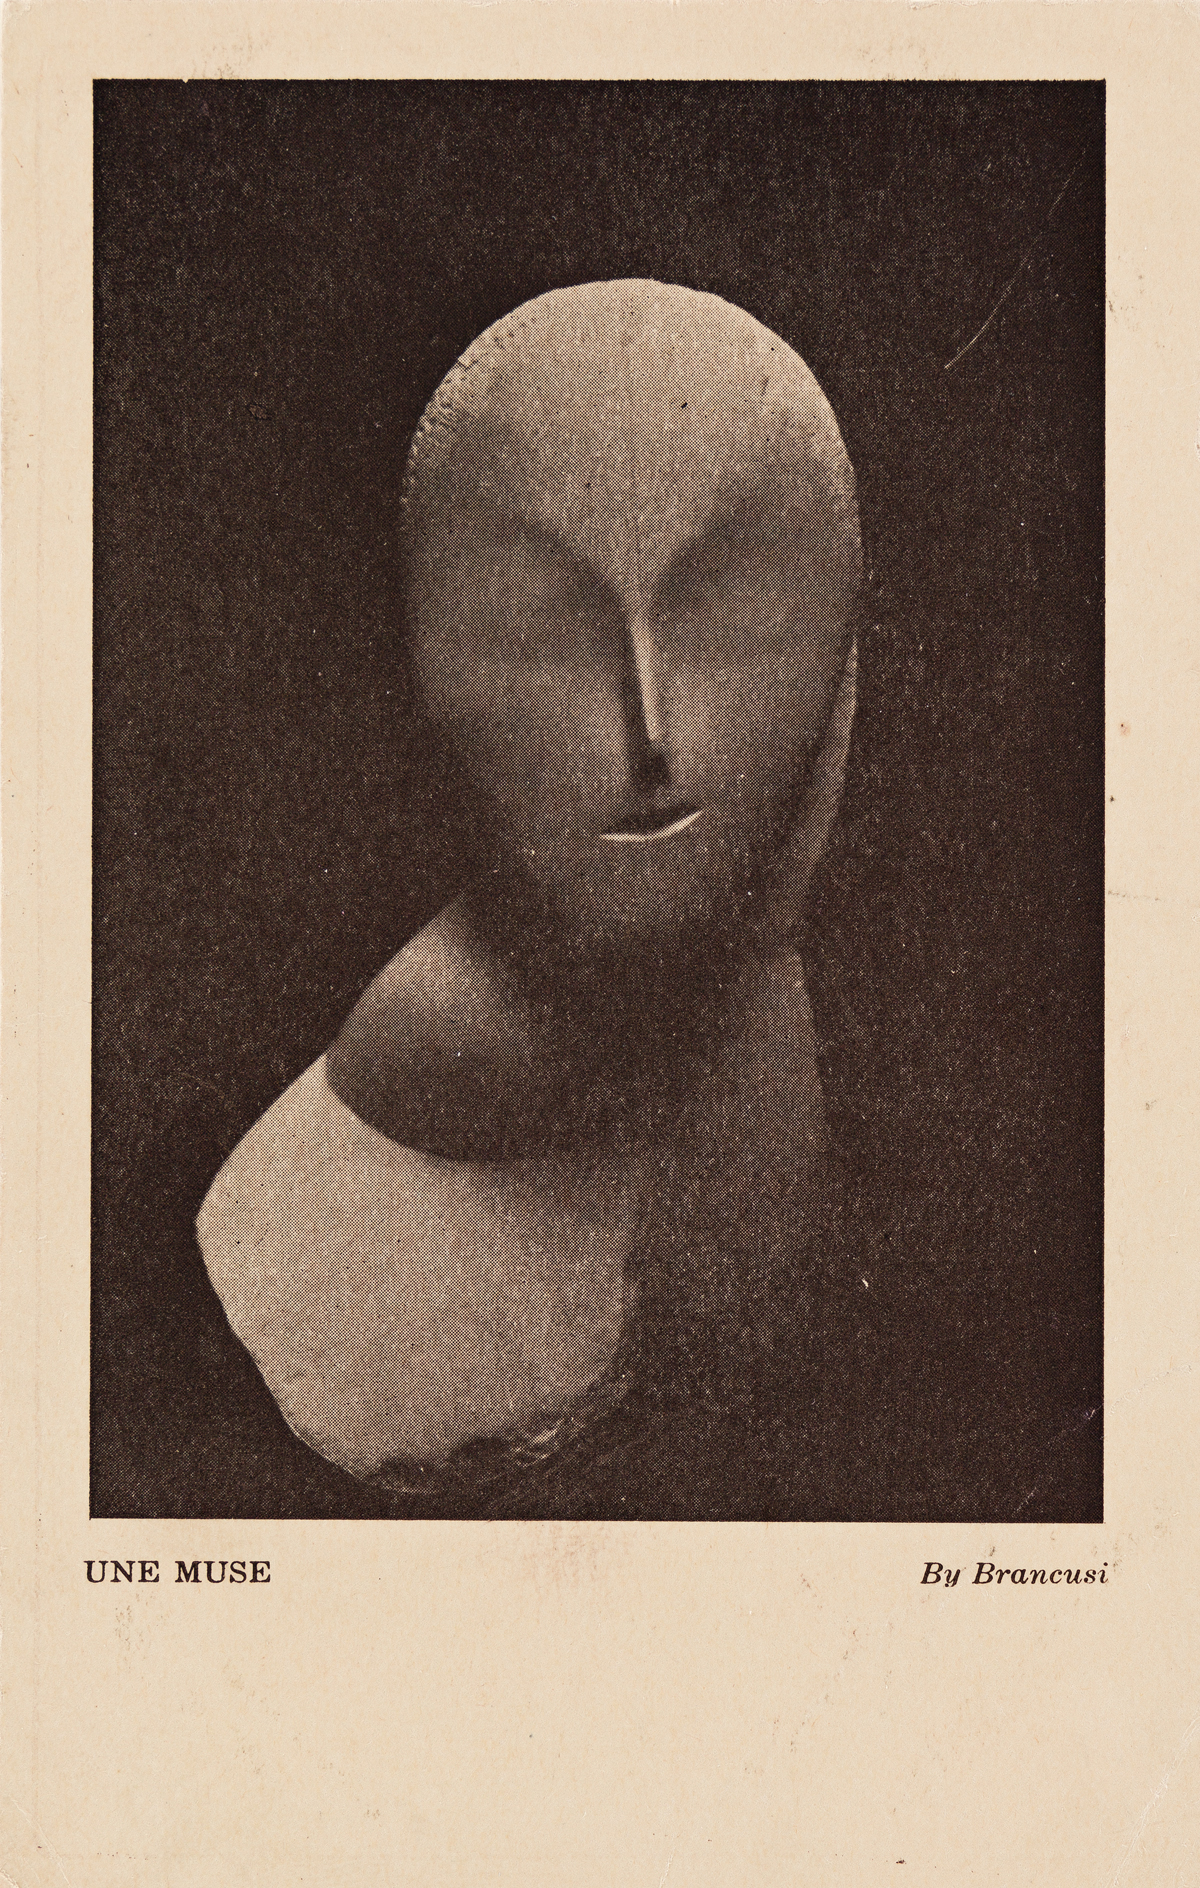 (1913 ARMORY SHOW) Group of 12 postcards highlighting choice artworks exhibited at the pioneering International Exhibition of Modern Ar